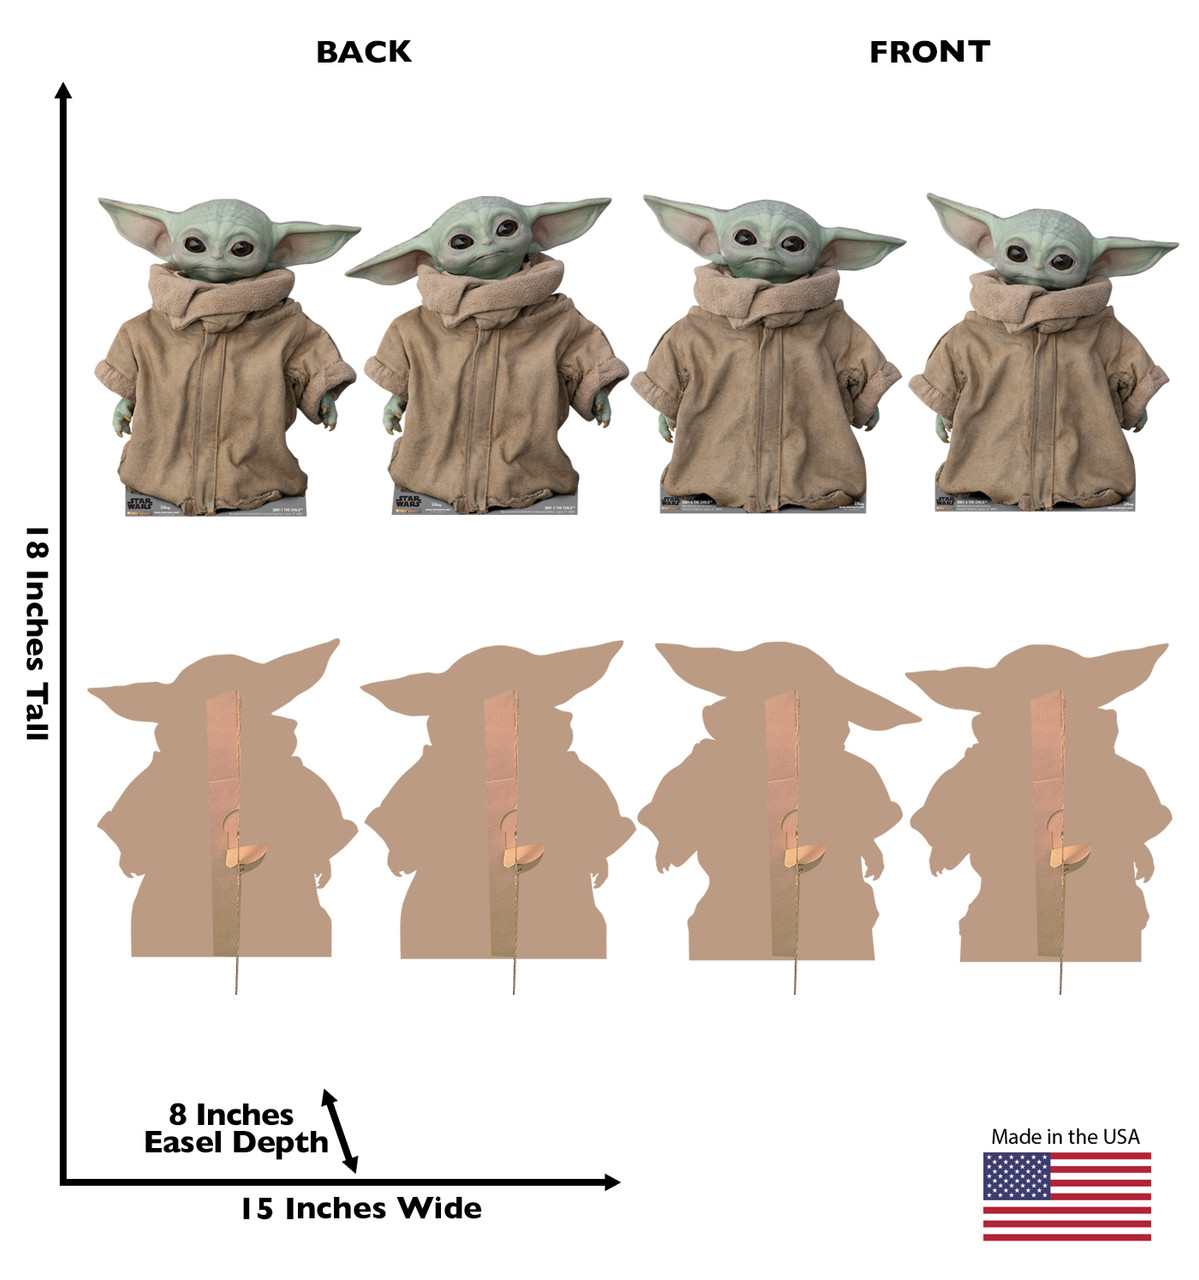 Life-size cardboard standee of THE CHILD fromThe Mandalorian with back and front dimensions. Set of 4.